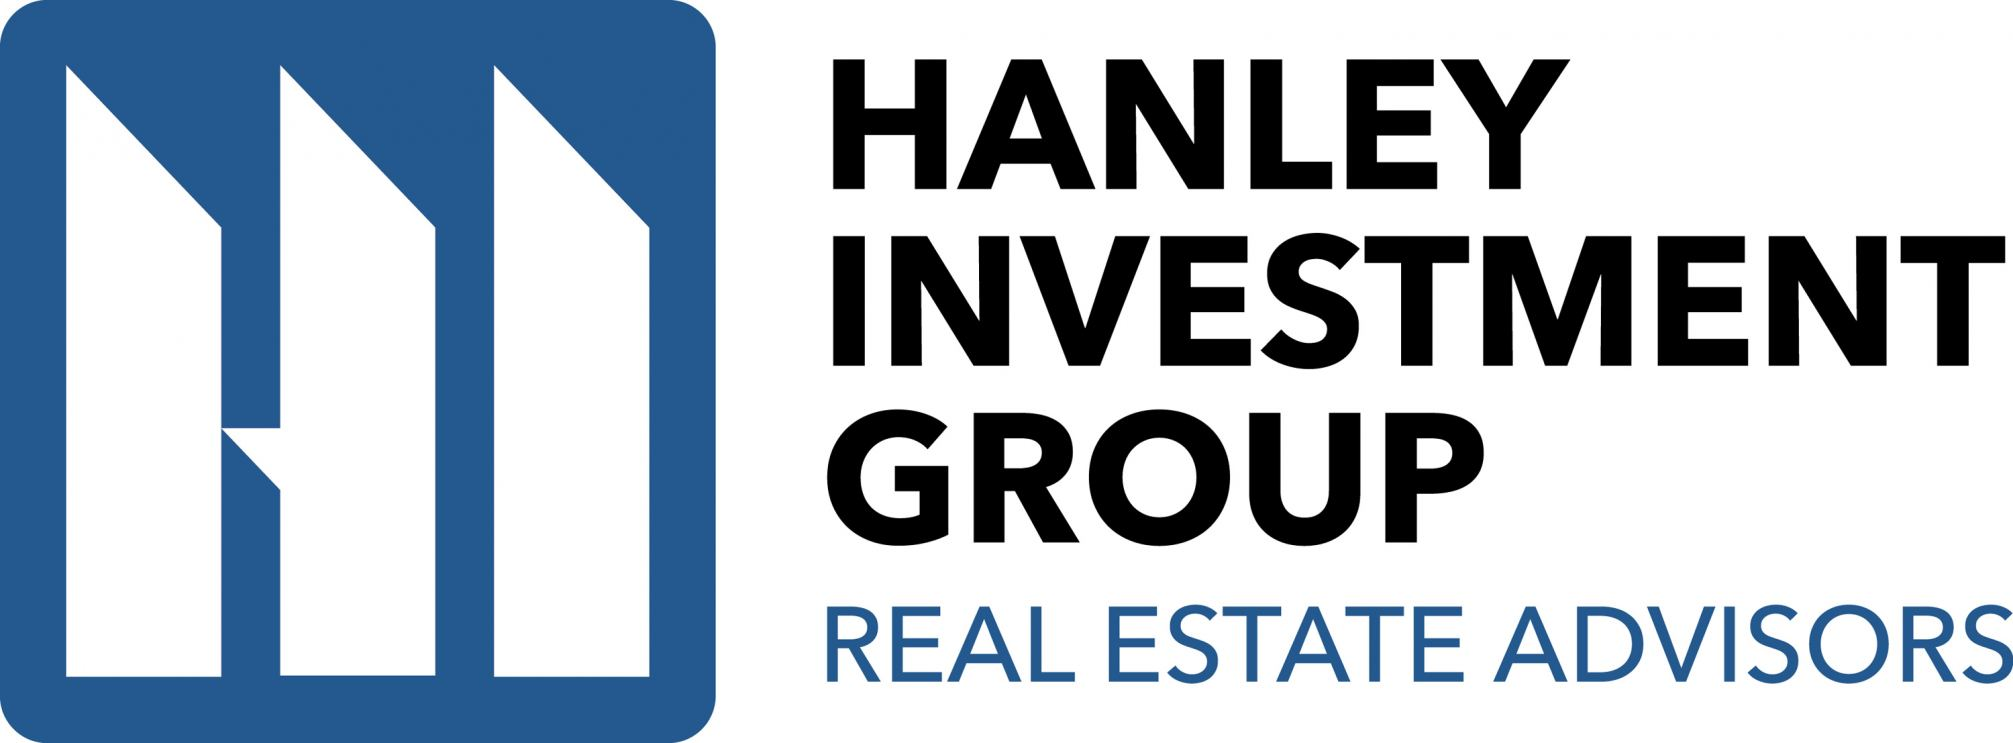 Hanley Investment Group Logo